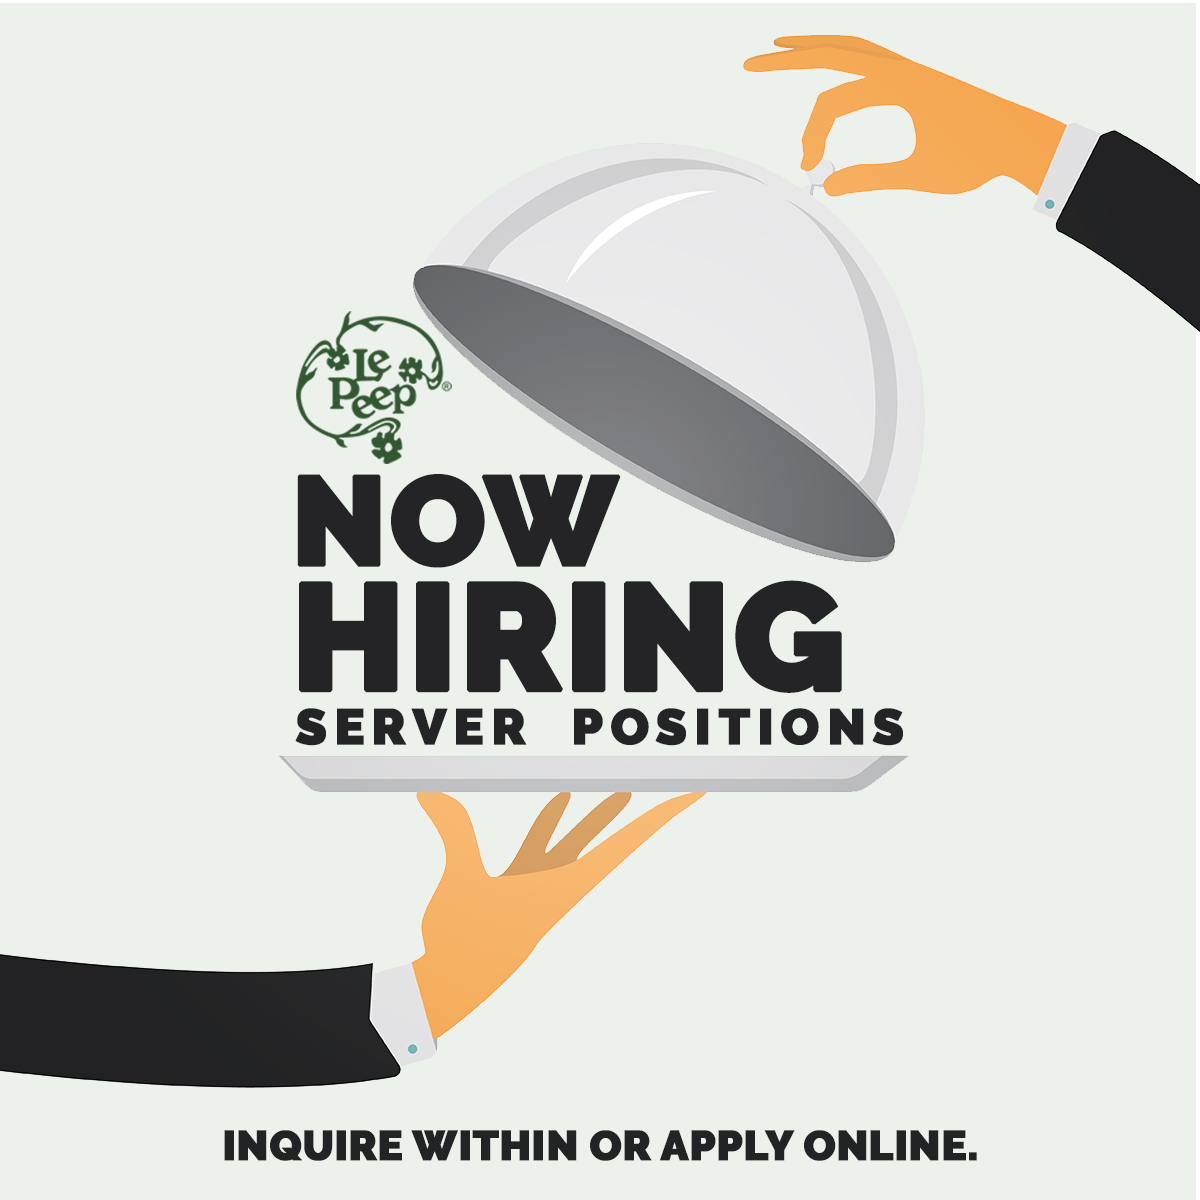 Now hiring server positions inquire within or apply online